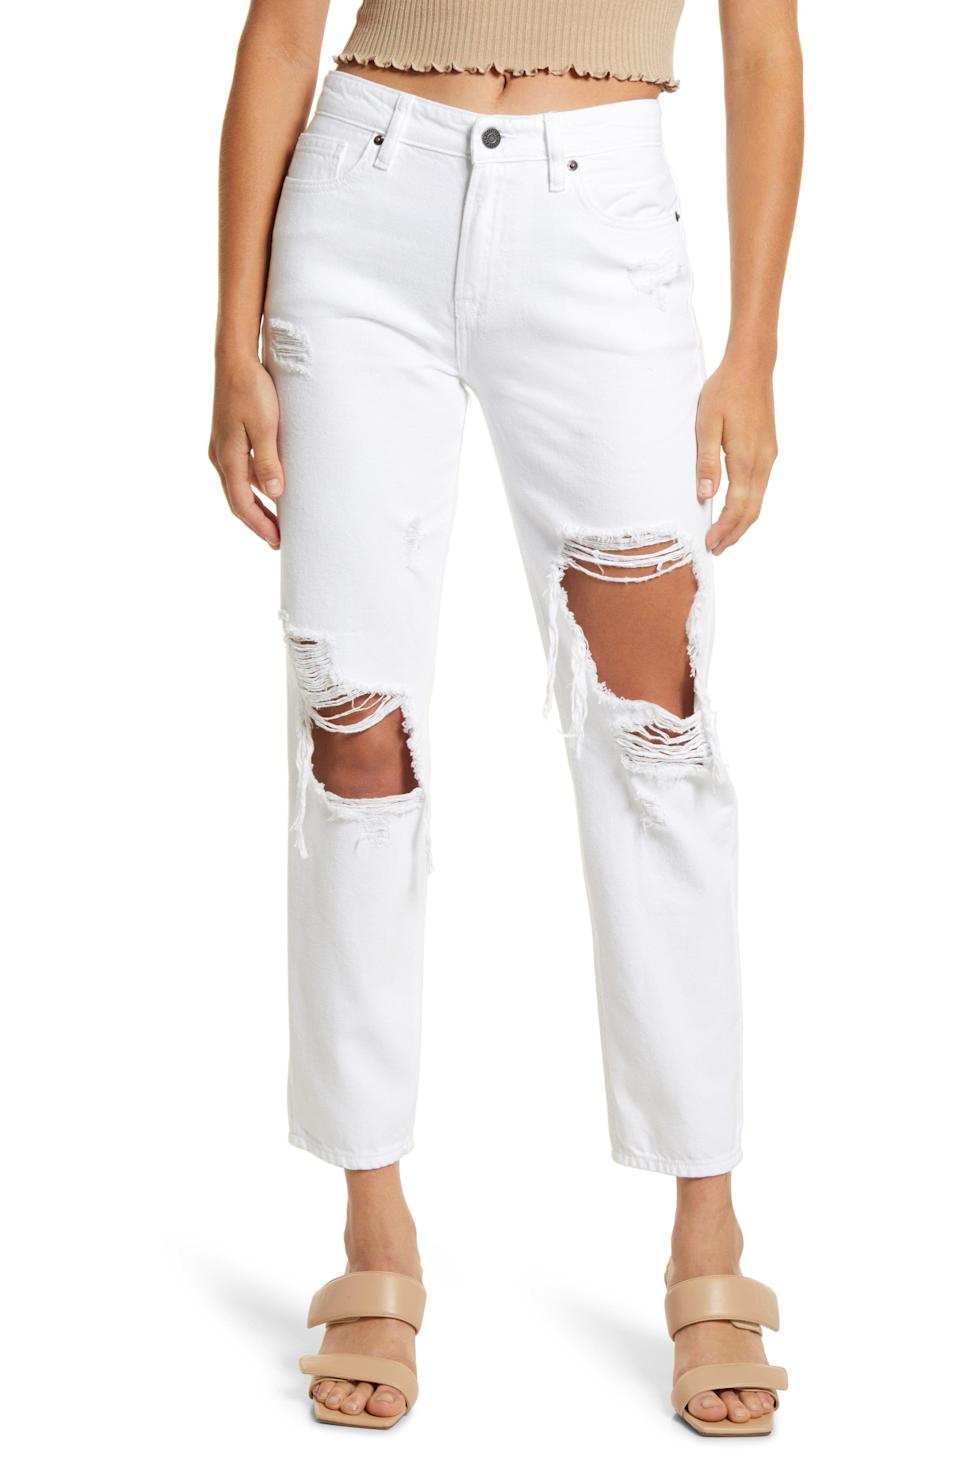 """<p><strong>HIDDEN JEANS</strong></p><p>nordstrom.com</p><p><strong>$85.00</strong></p><p><a href=""""https://go.redirectingat.com?id=74968X1596630&url=https%3A%2F%2Fwww.nordstrom.com%2Fs%2Fhidden-jeans-distressed-high-waist-ankle-straight-leg-boyfriend-jeans%2F6267772&sref=https%3A%2F%2Fwww.womenshealthmag.com%2Flife%2Fg37080961%2Fbest-boyfriend-jeans%2F"""" rel=""""nofollow noopener"""" target=""""_blank"""" data-ylk=""""slk:Shop Now"""" class=""""link rapid-noclick-resp"""">Shop Now</a></p><p>You probably own a pair of white jeans, but this distressed, straight leg, cropped pair is a great way to mix up your denim arsenal. They're made with 100 percent cotton to be extra soft and comfy, too.</p>"""